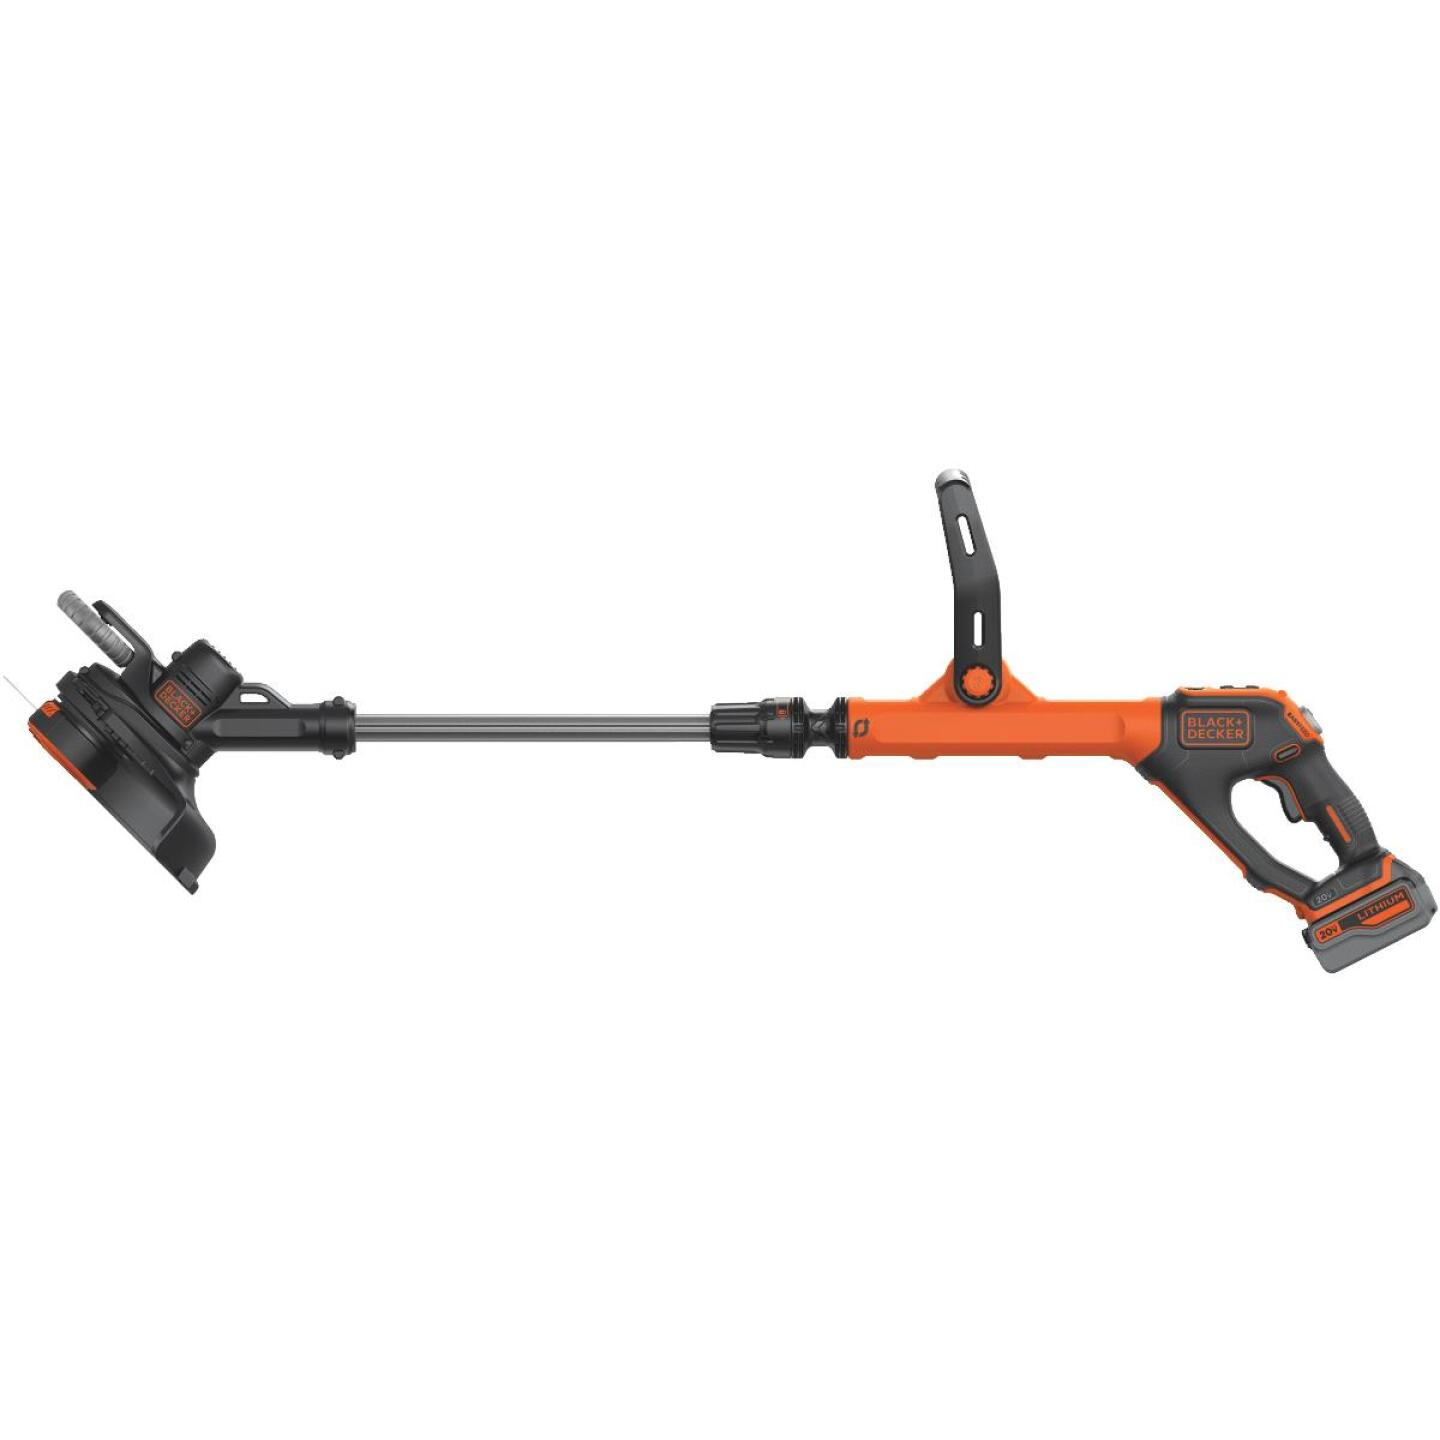 Black & Decker EasyFeed 20V MAX 12 In. Lithium Ion Straight Cordless String Trimmer/Edger Image 1